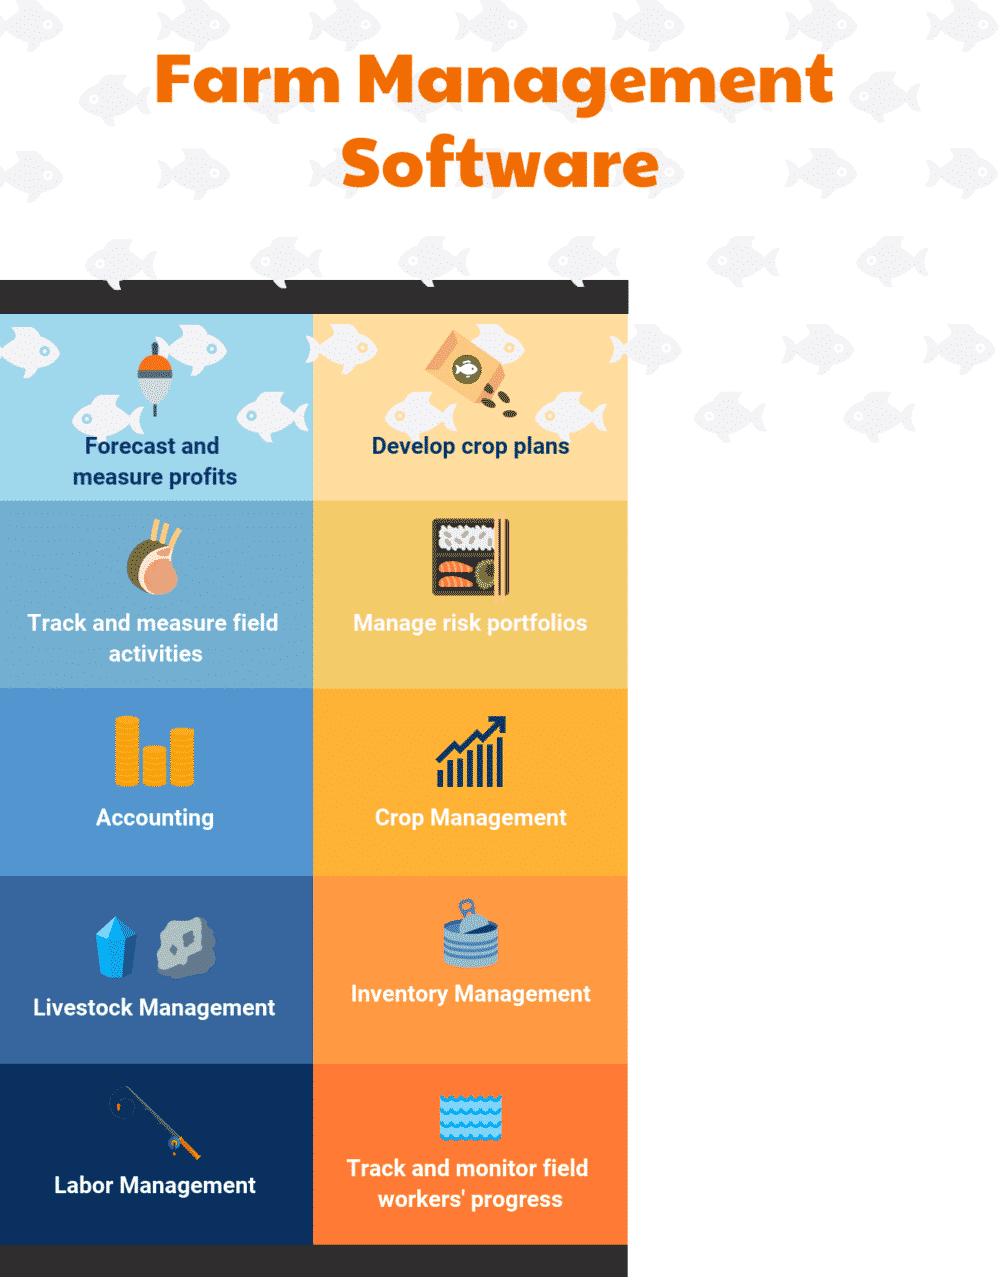 Top 9 Farm Management Software - Compare Reviews, Features